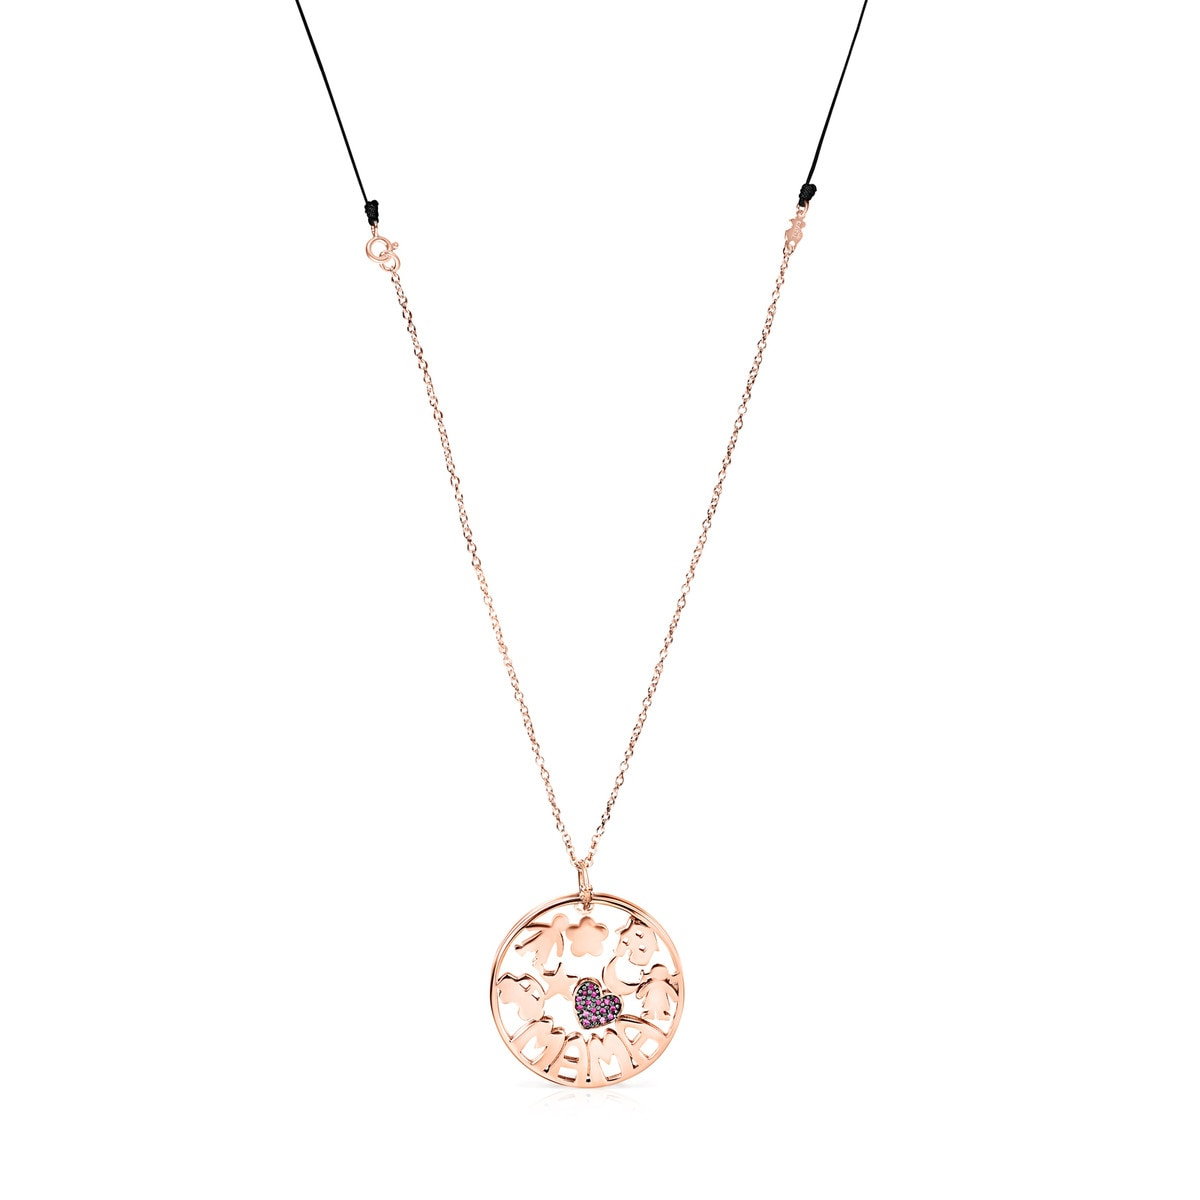 TOUS Mama Necklace in rose Gold Vermeil with Ruby and black Cord